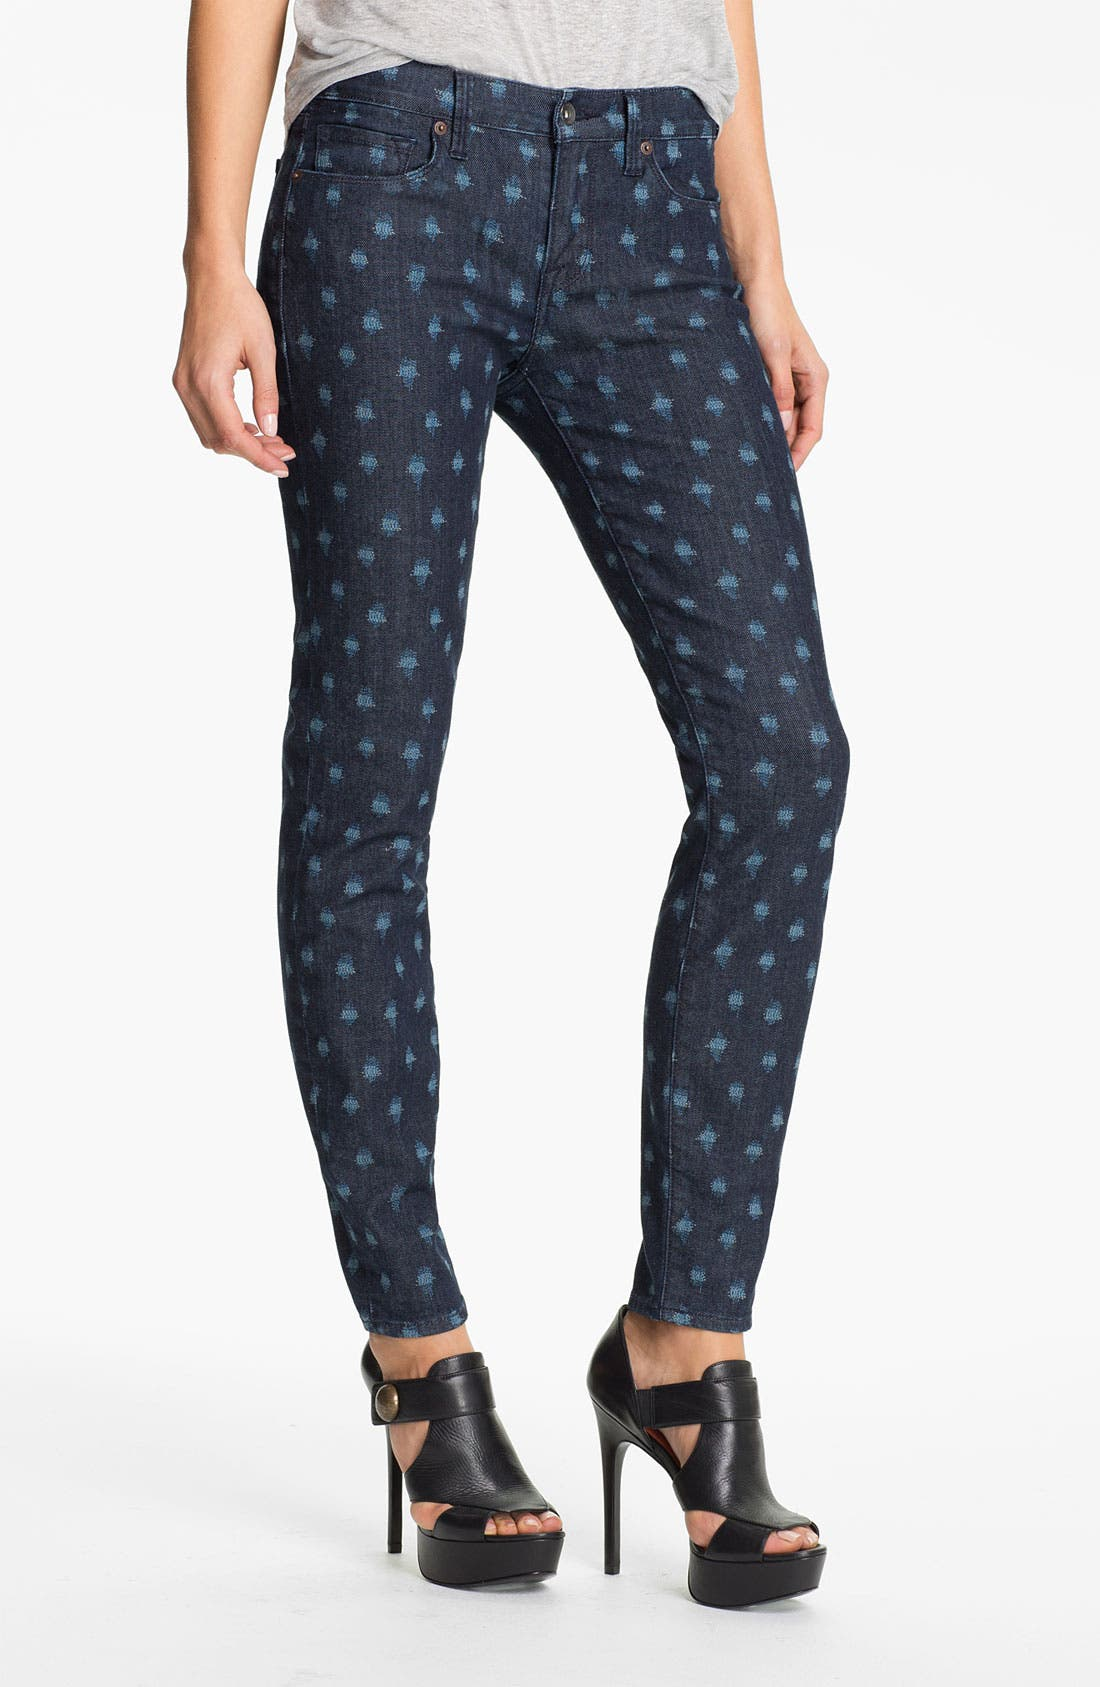 Alternate Image 1 Selected - Lucky Brand 'Sofia' Print Skinny Jeans